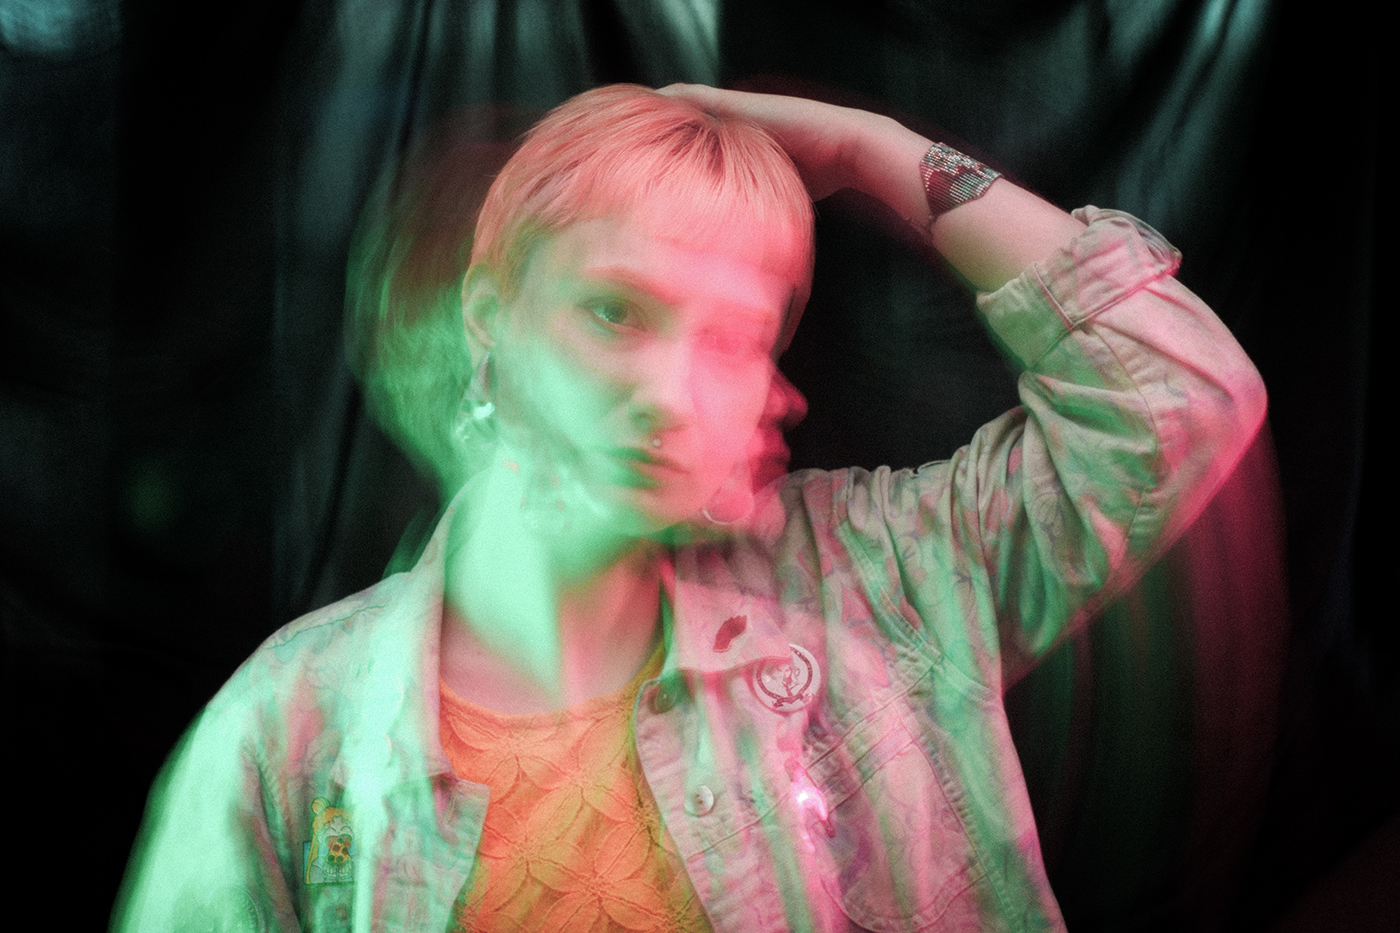 PK Opal (Cecil Smith) strives to create music that breaks the spell of the mundane routines of everyday life.